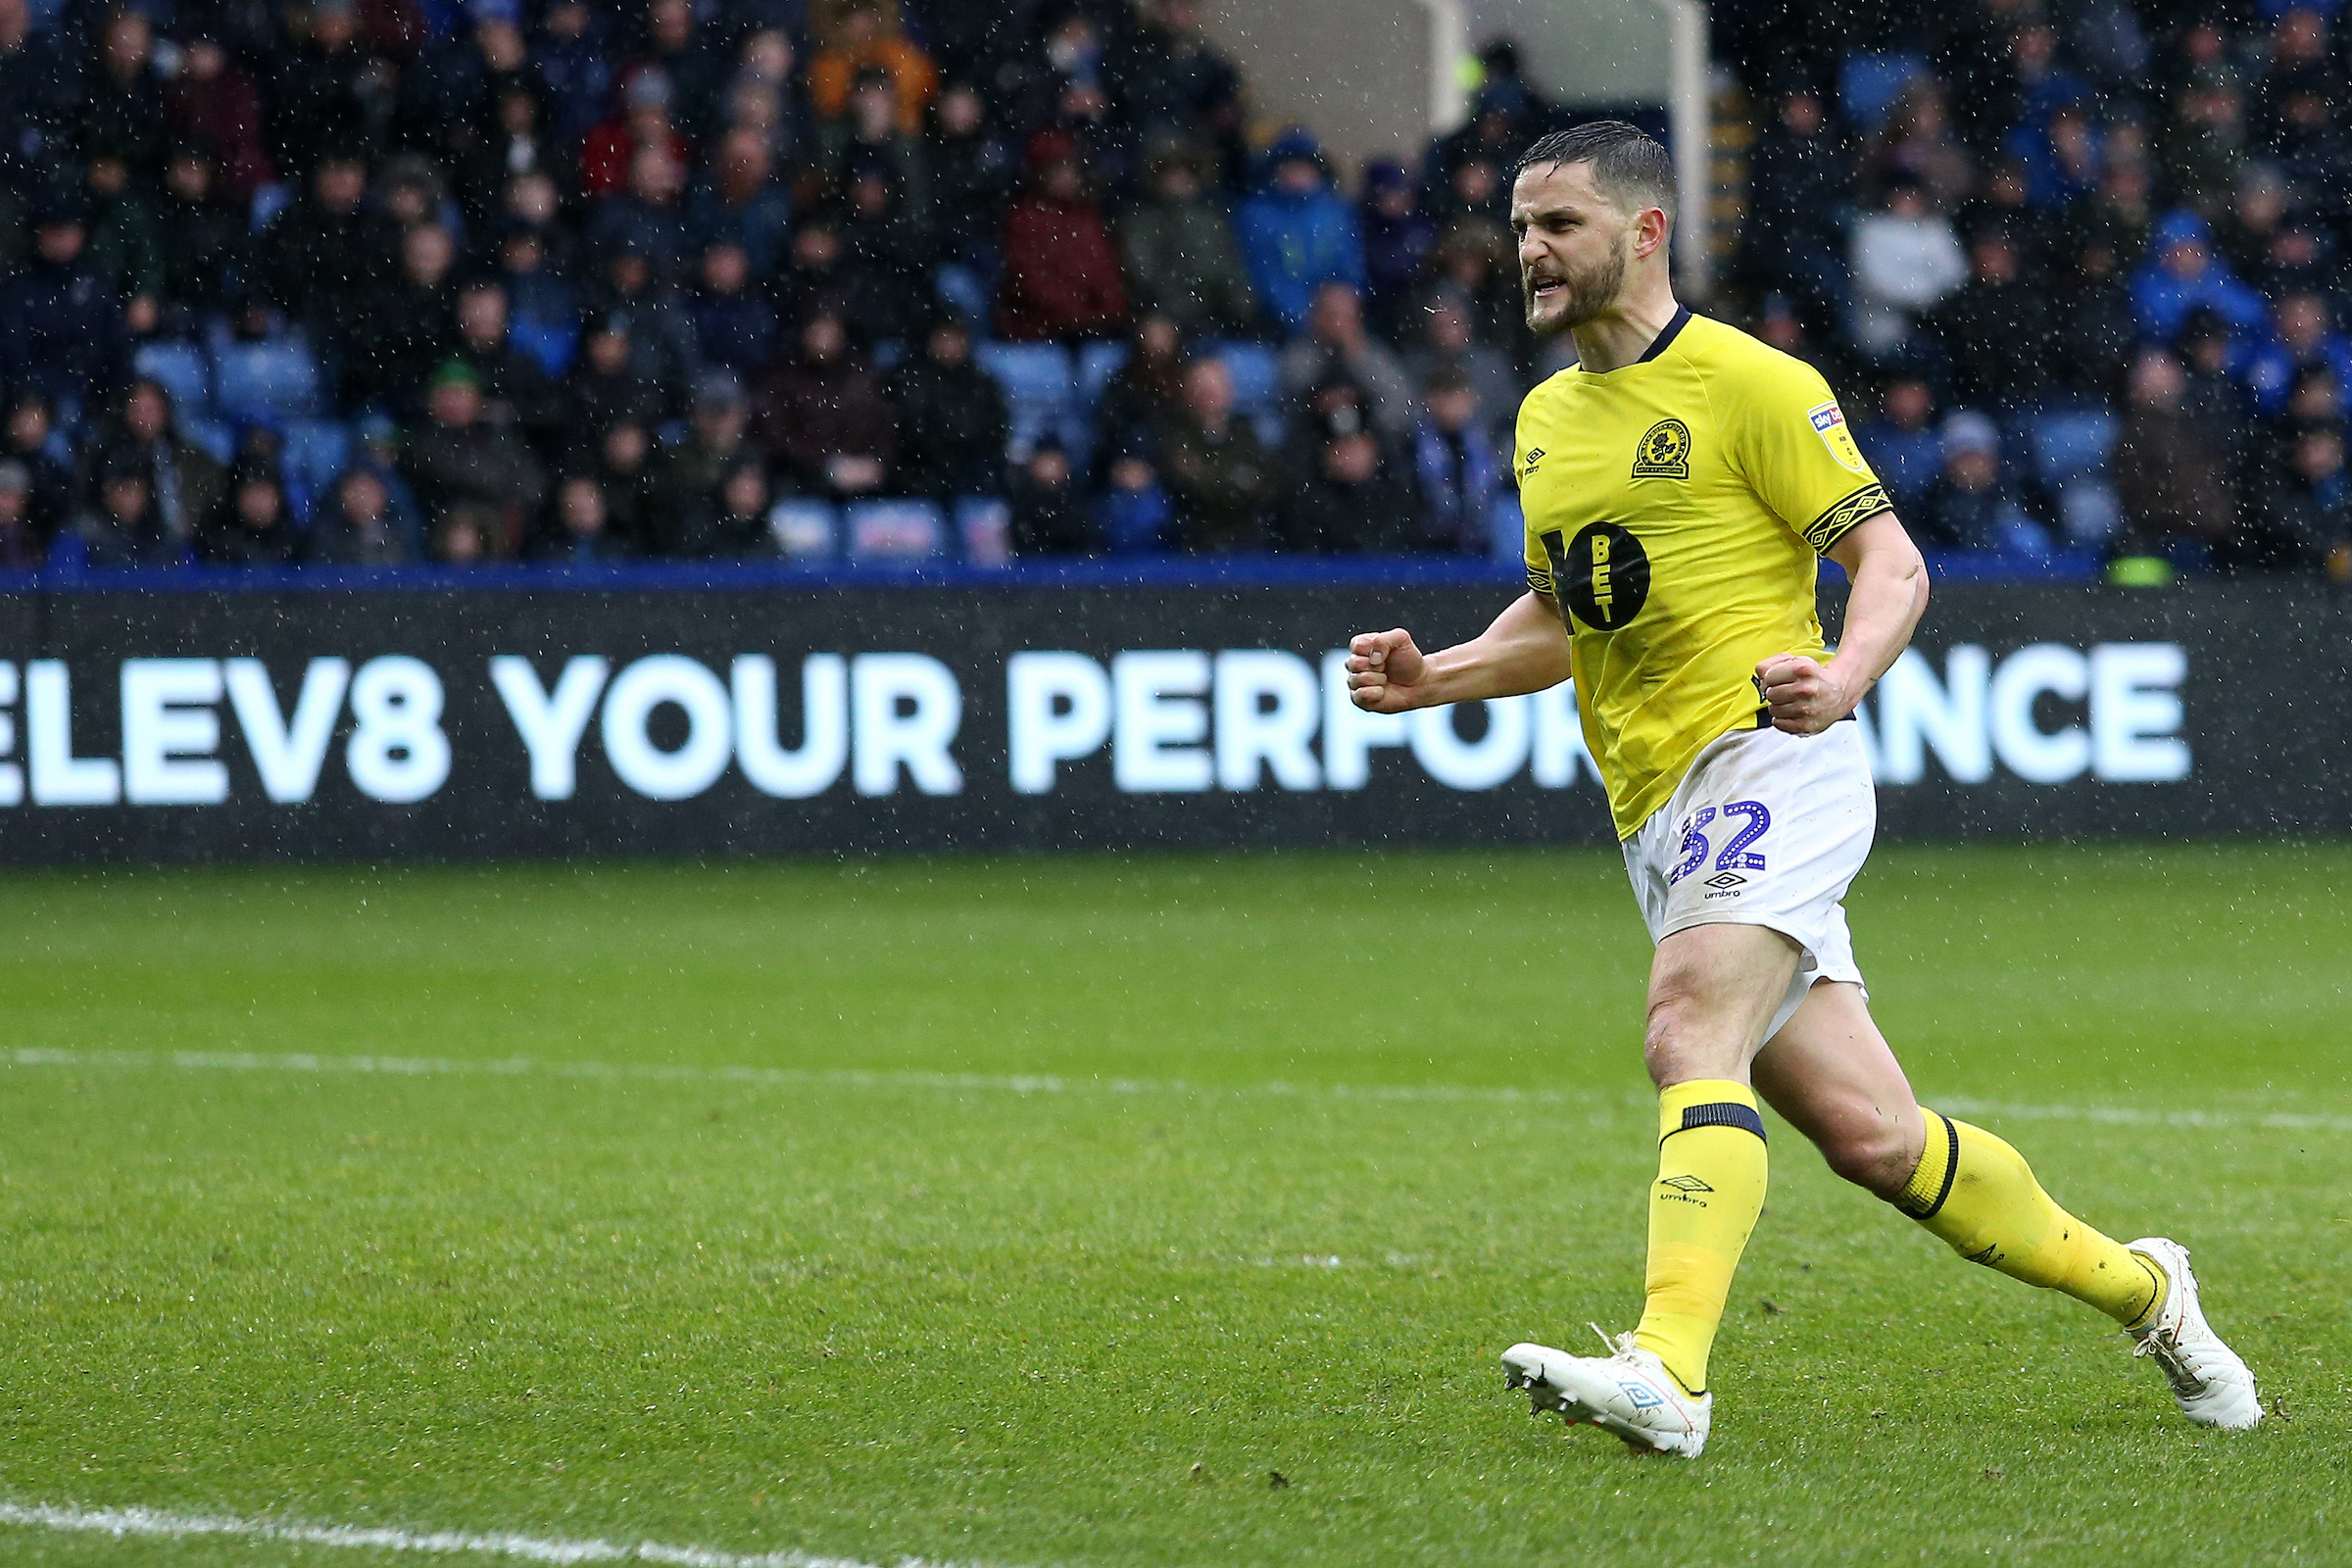 Craig Conway celebrates his goal at Sheffield Wednesday in March